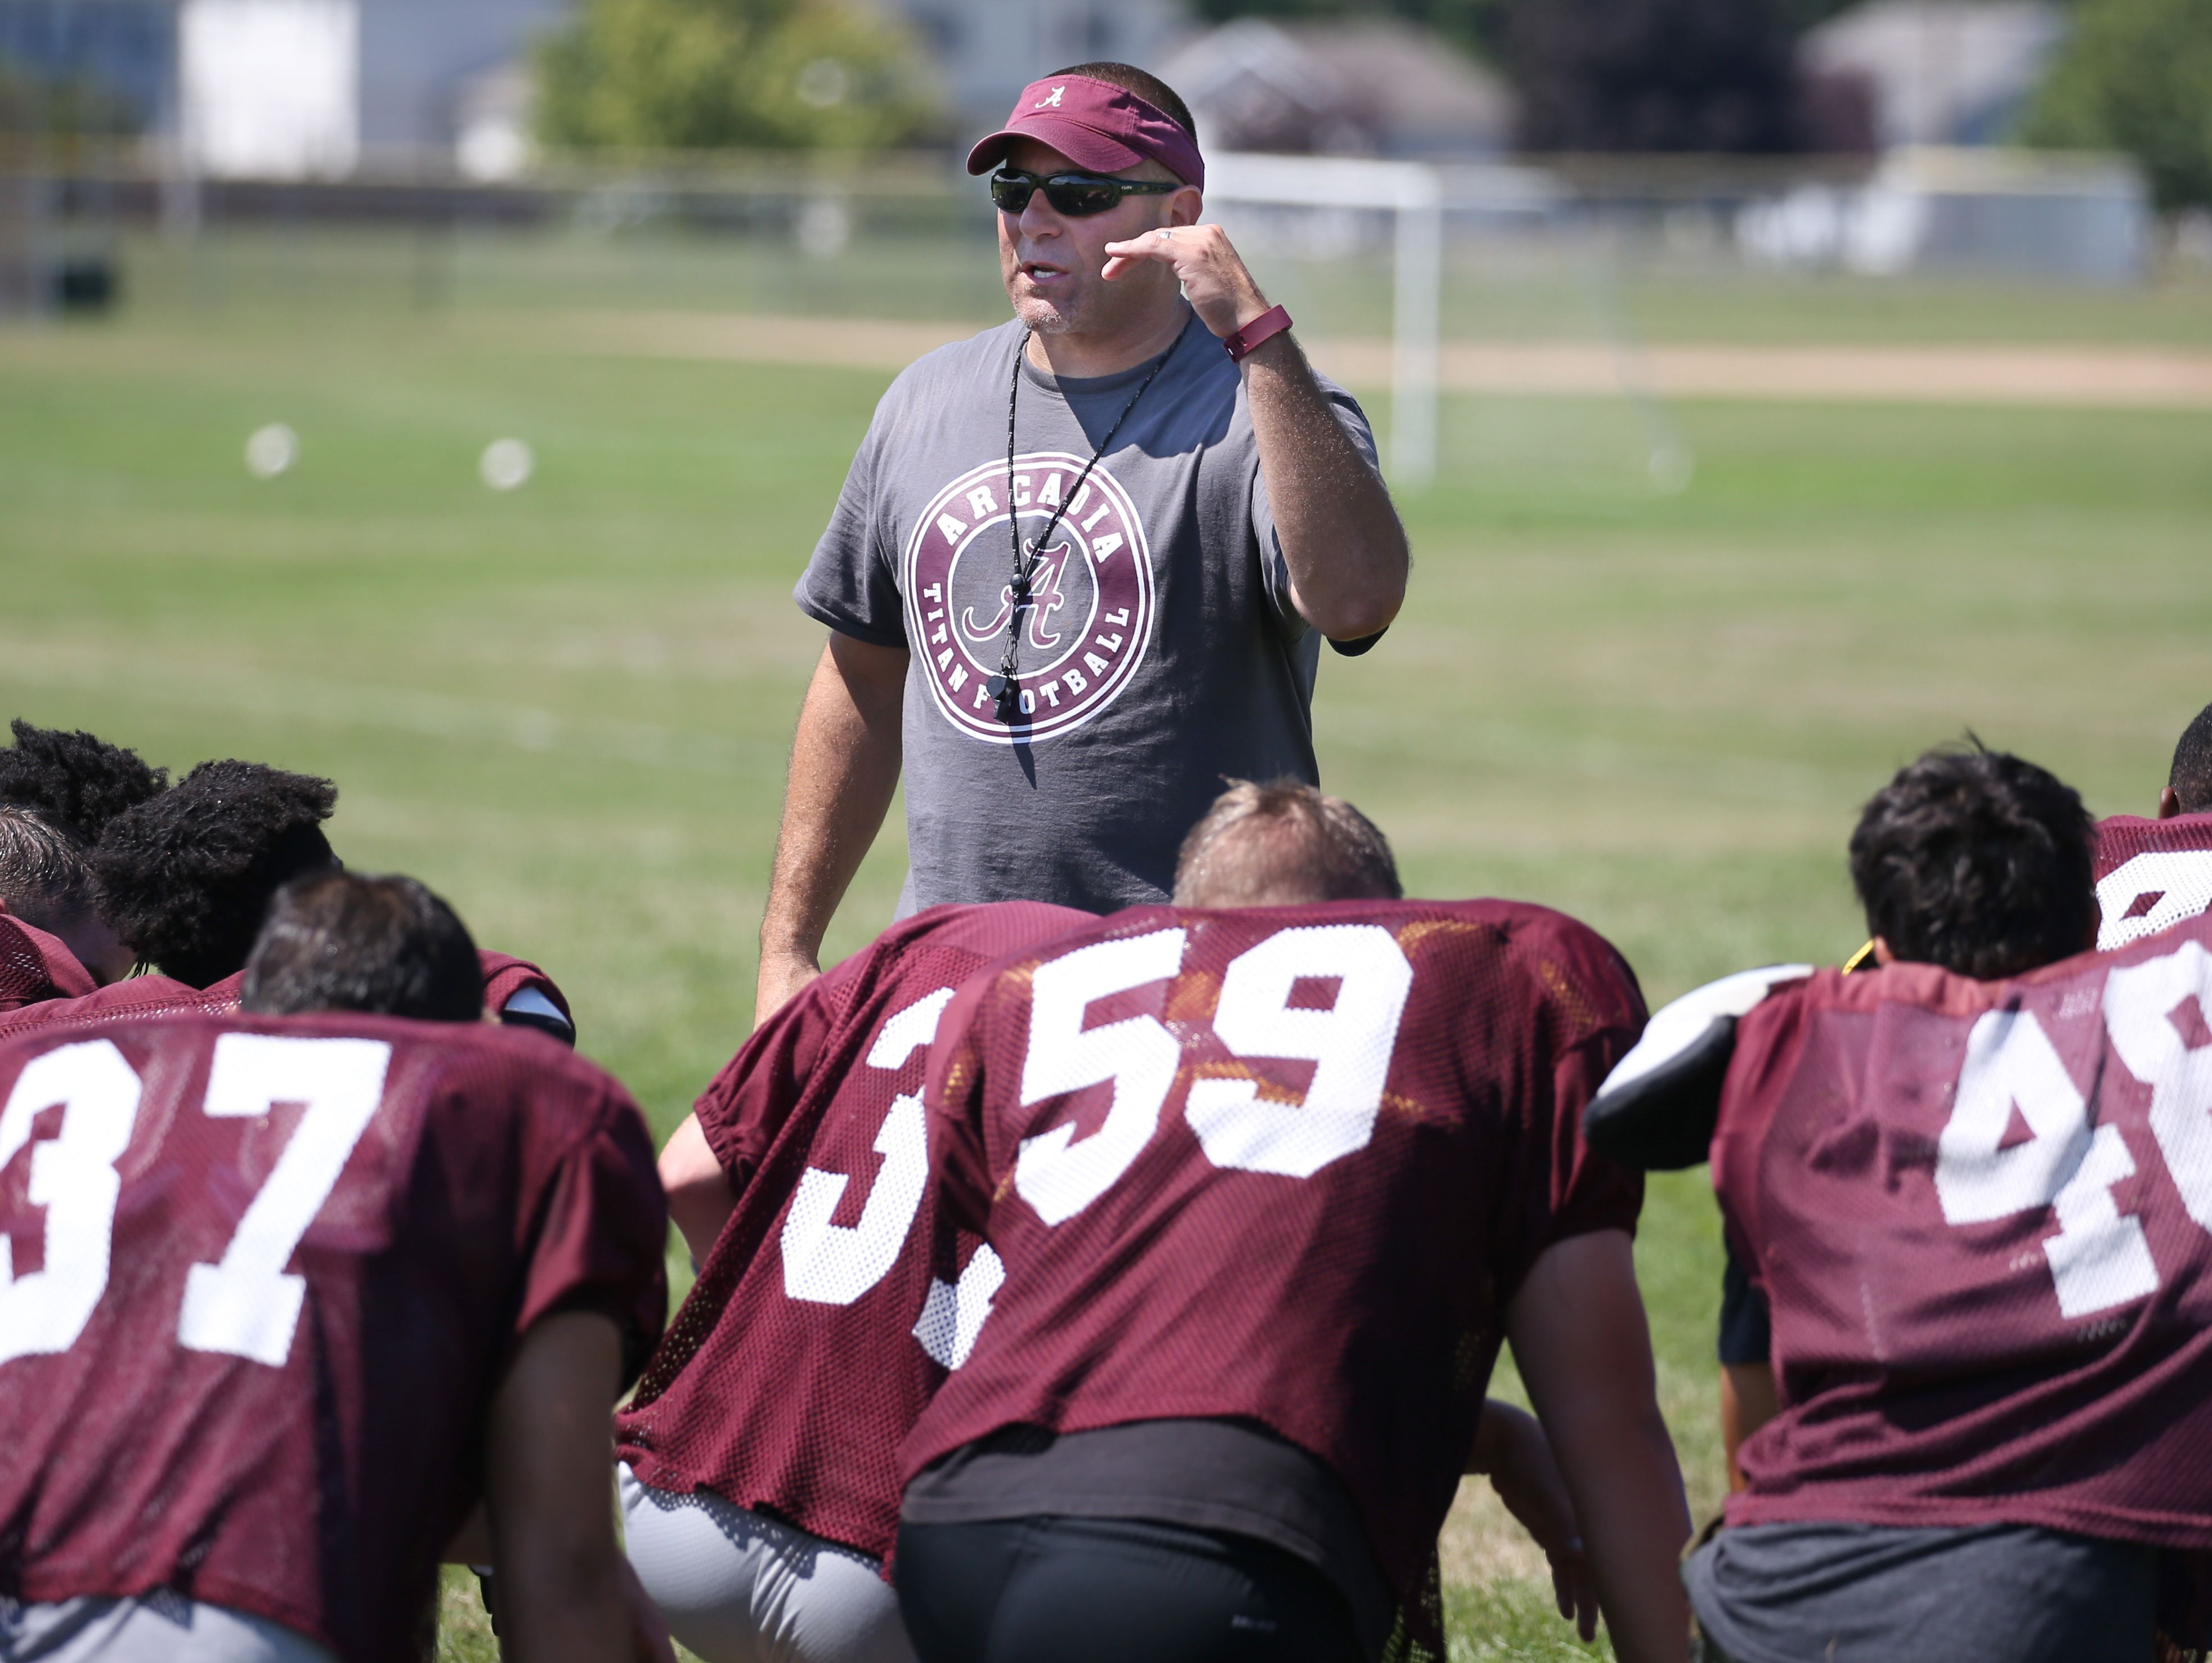 Greece Arcadia head coach John Lockhart keeps his kids motivated during their practice Thursday, Aug. 18, 2016 at the high school in Greece.